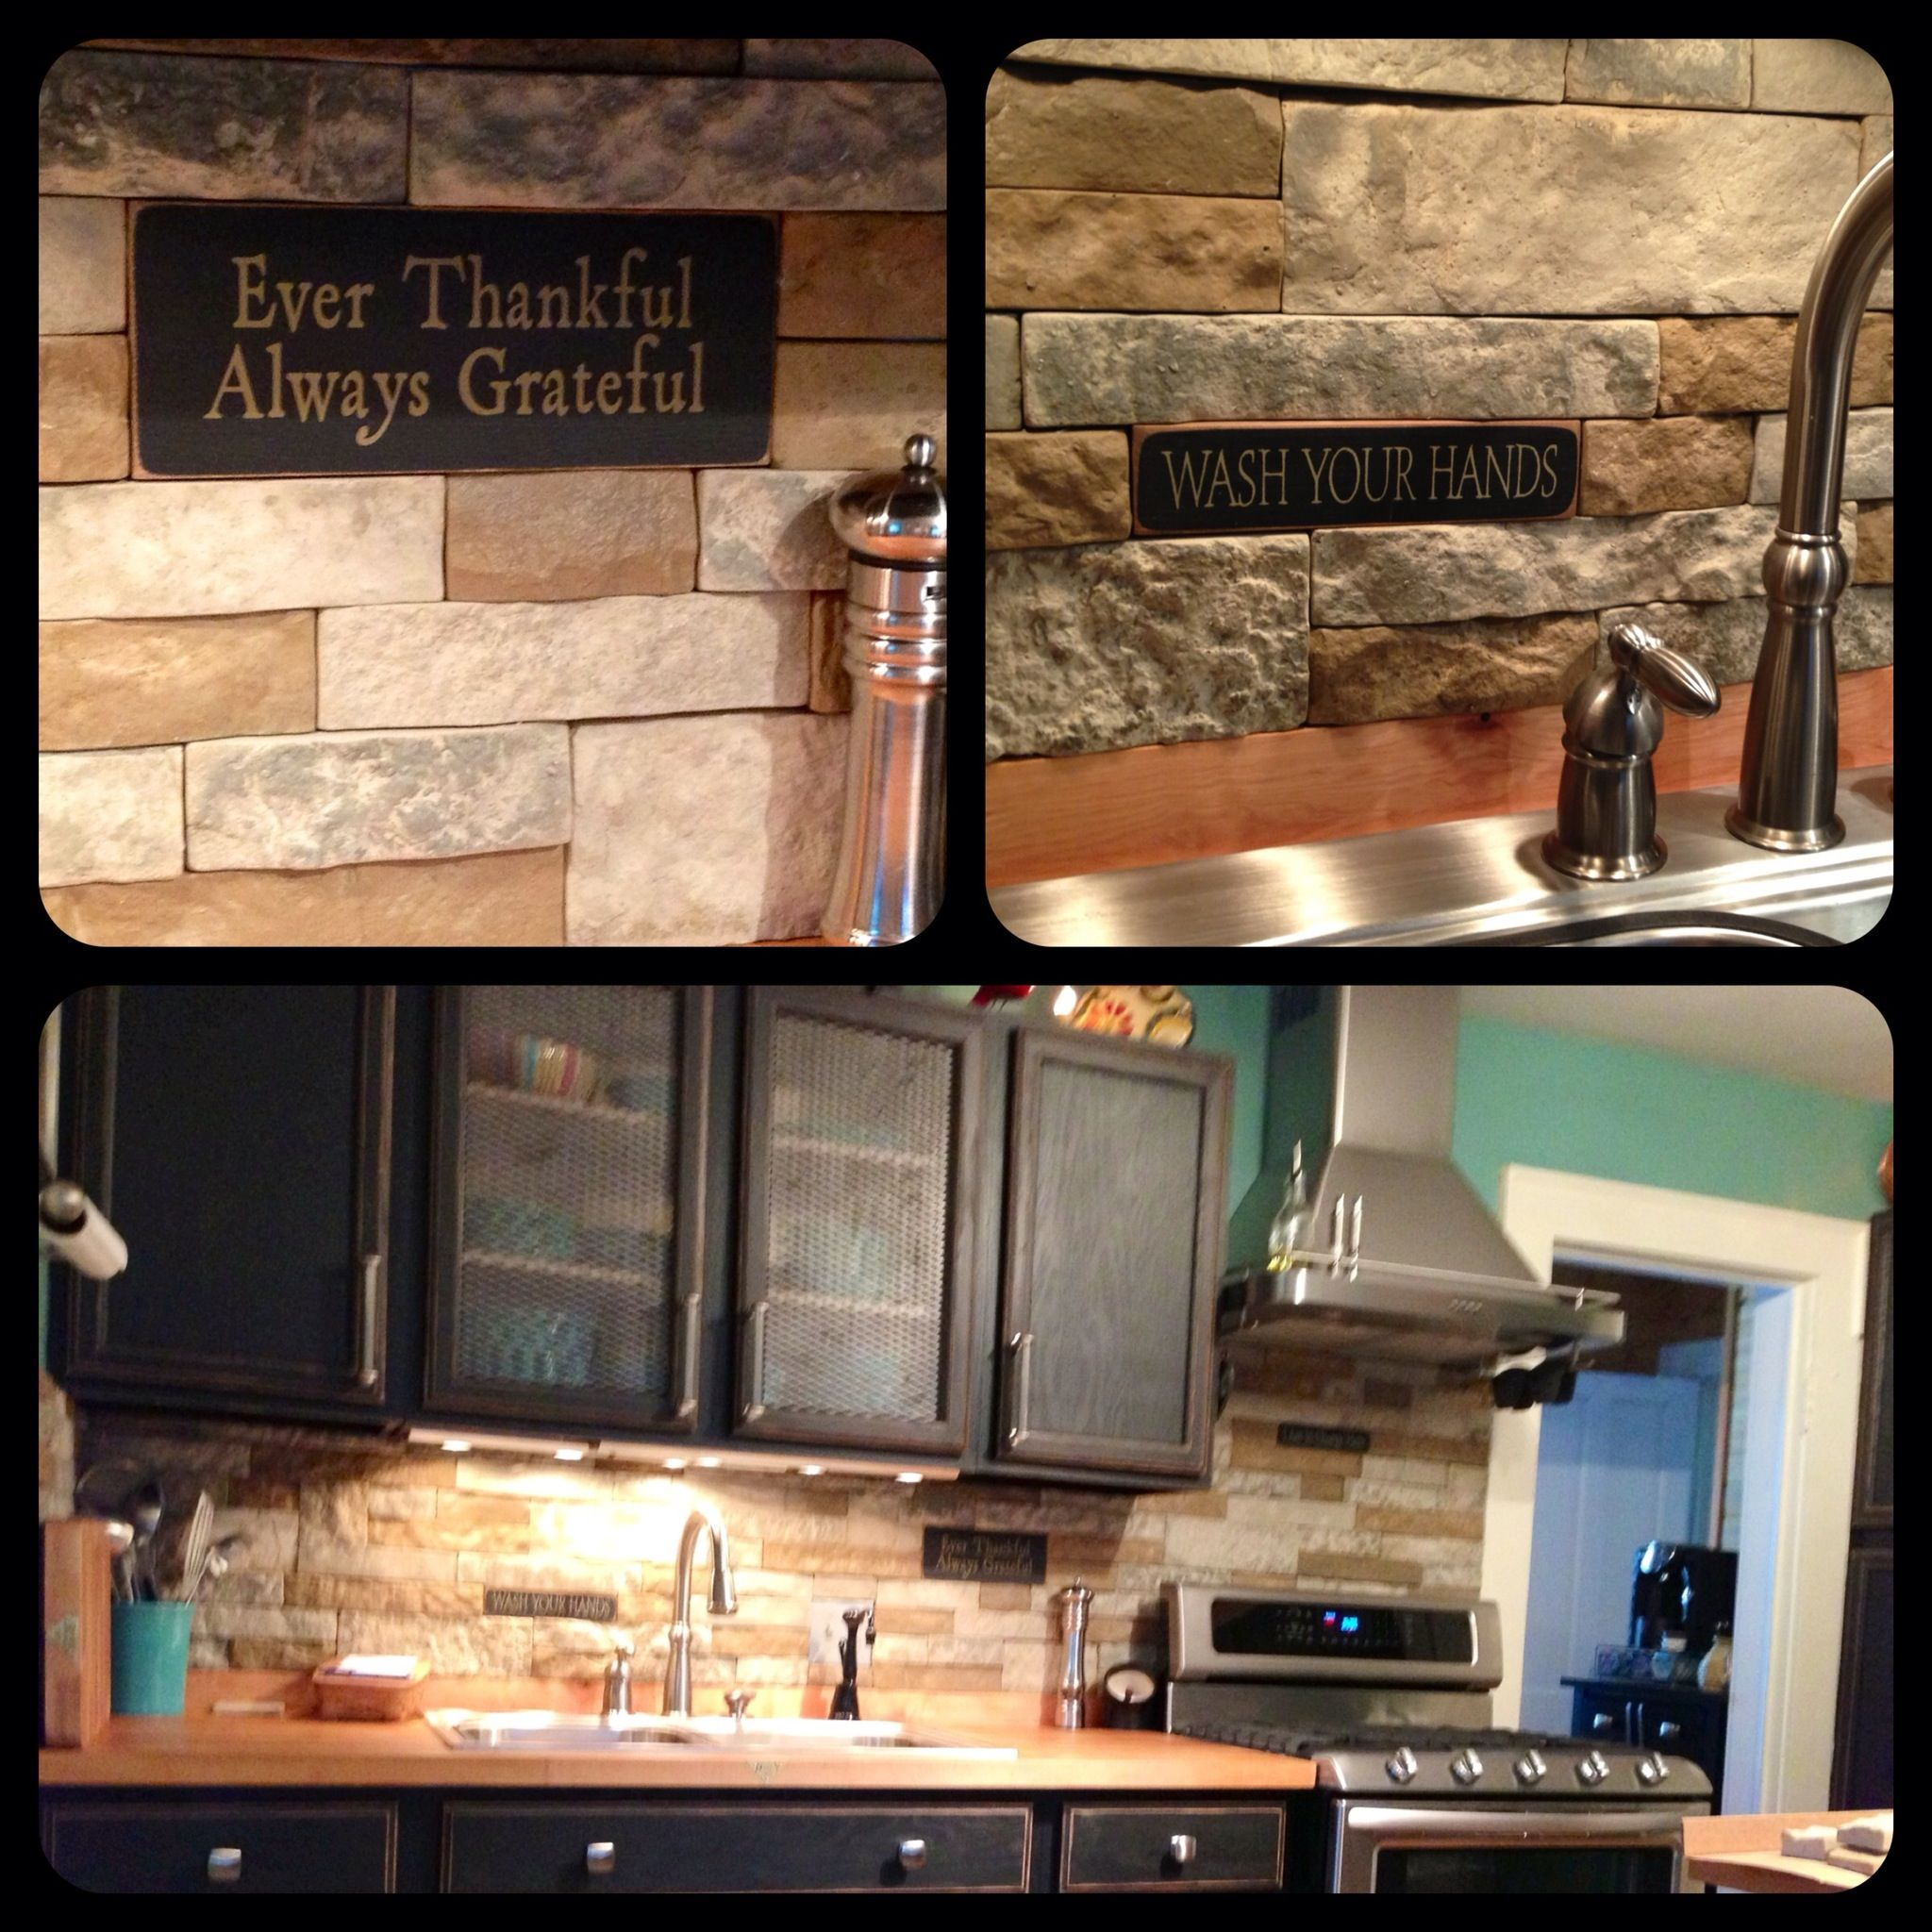 New stack stone backsplash. AirStone at Lowes | back splash ...